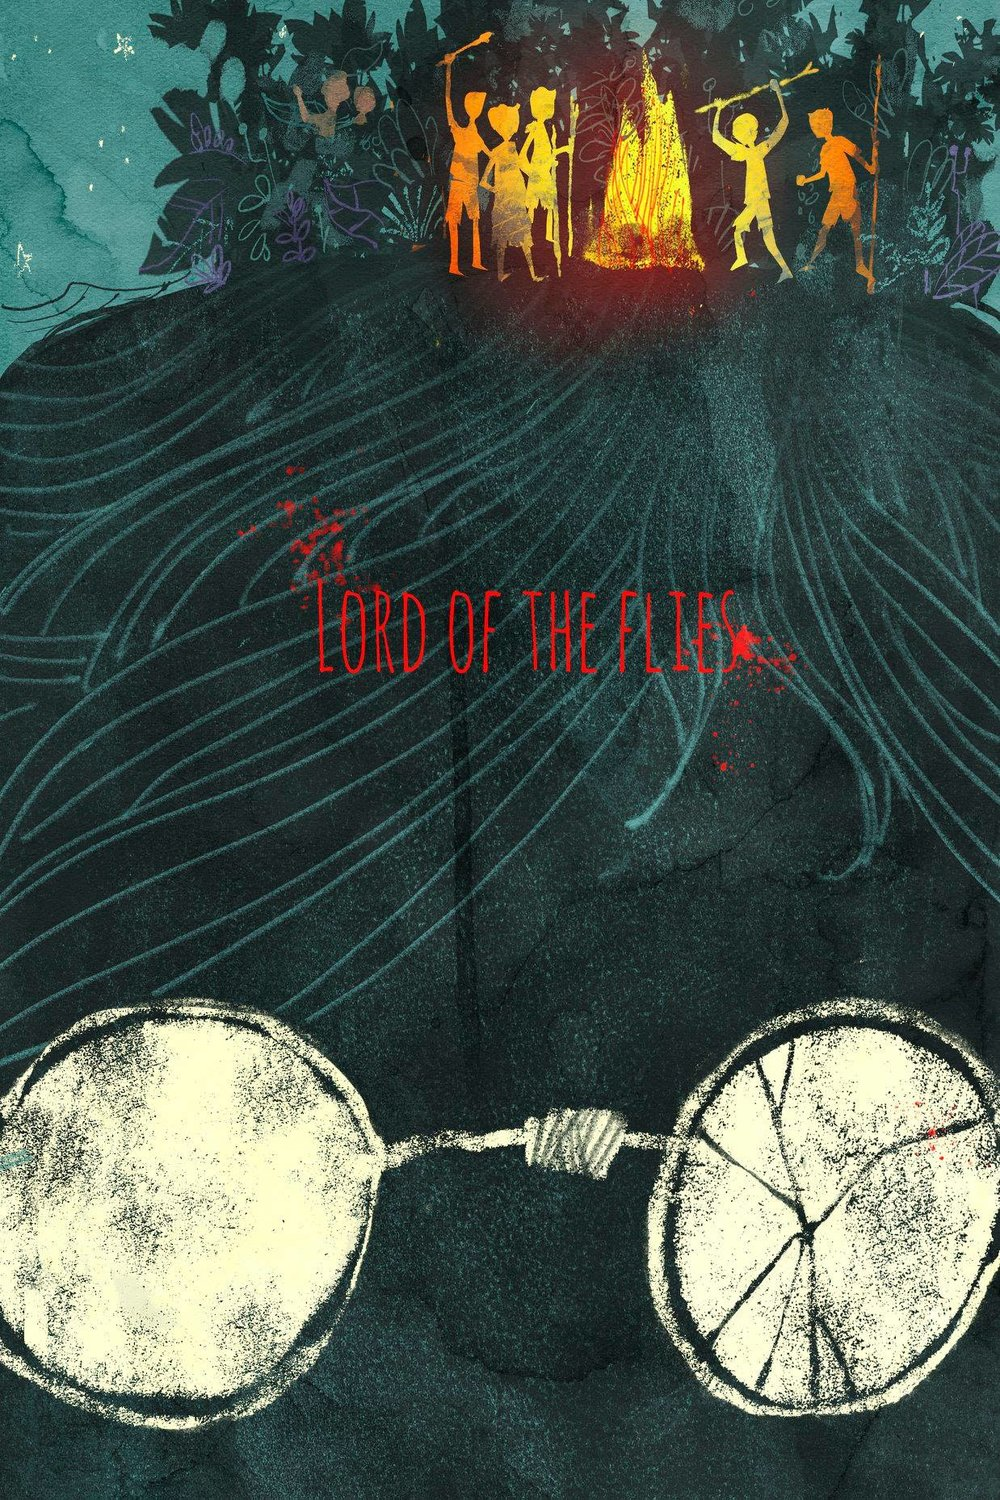 Book cover art by Lee White!